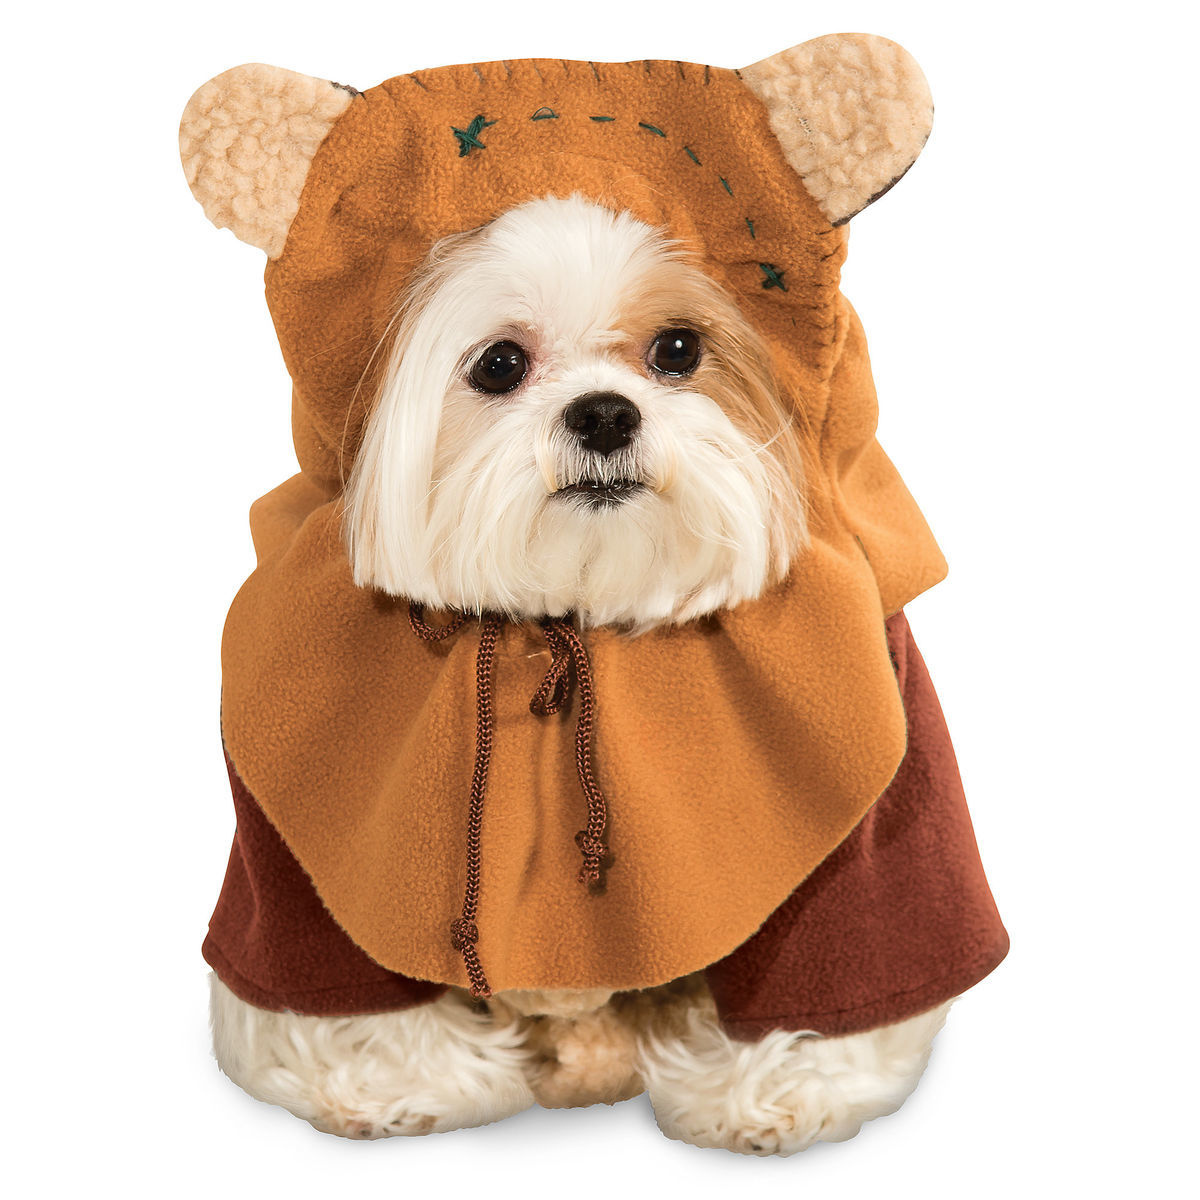 Pet Costumes With Disney Style! 5